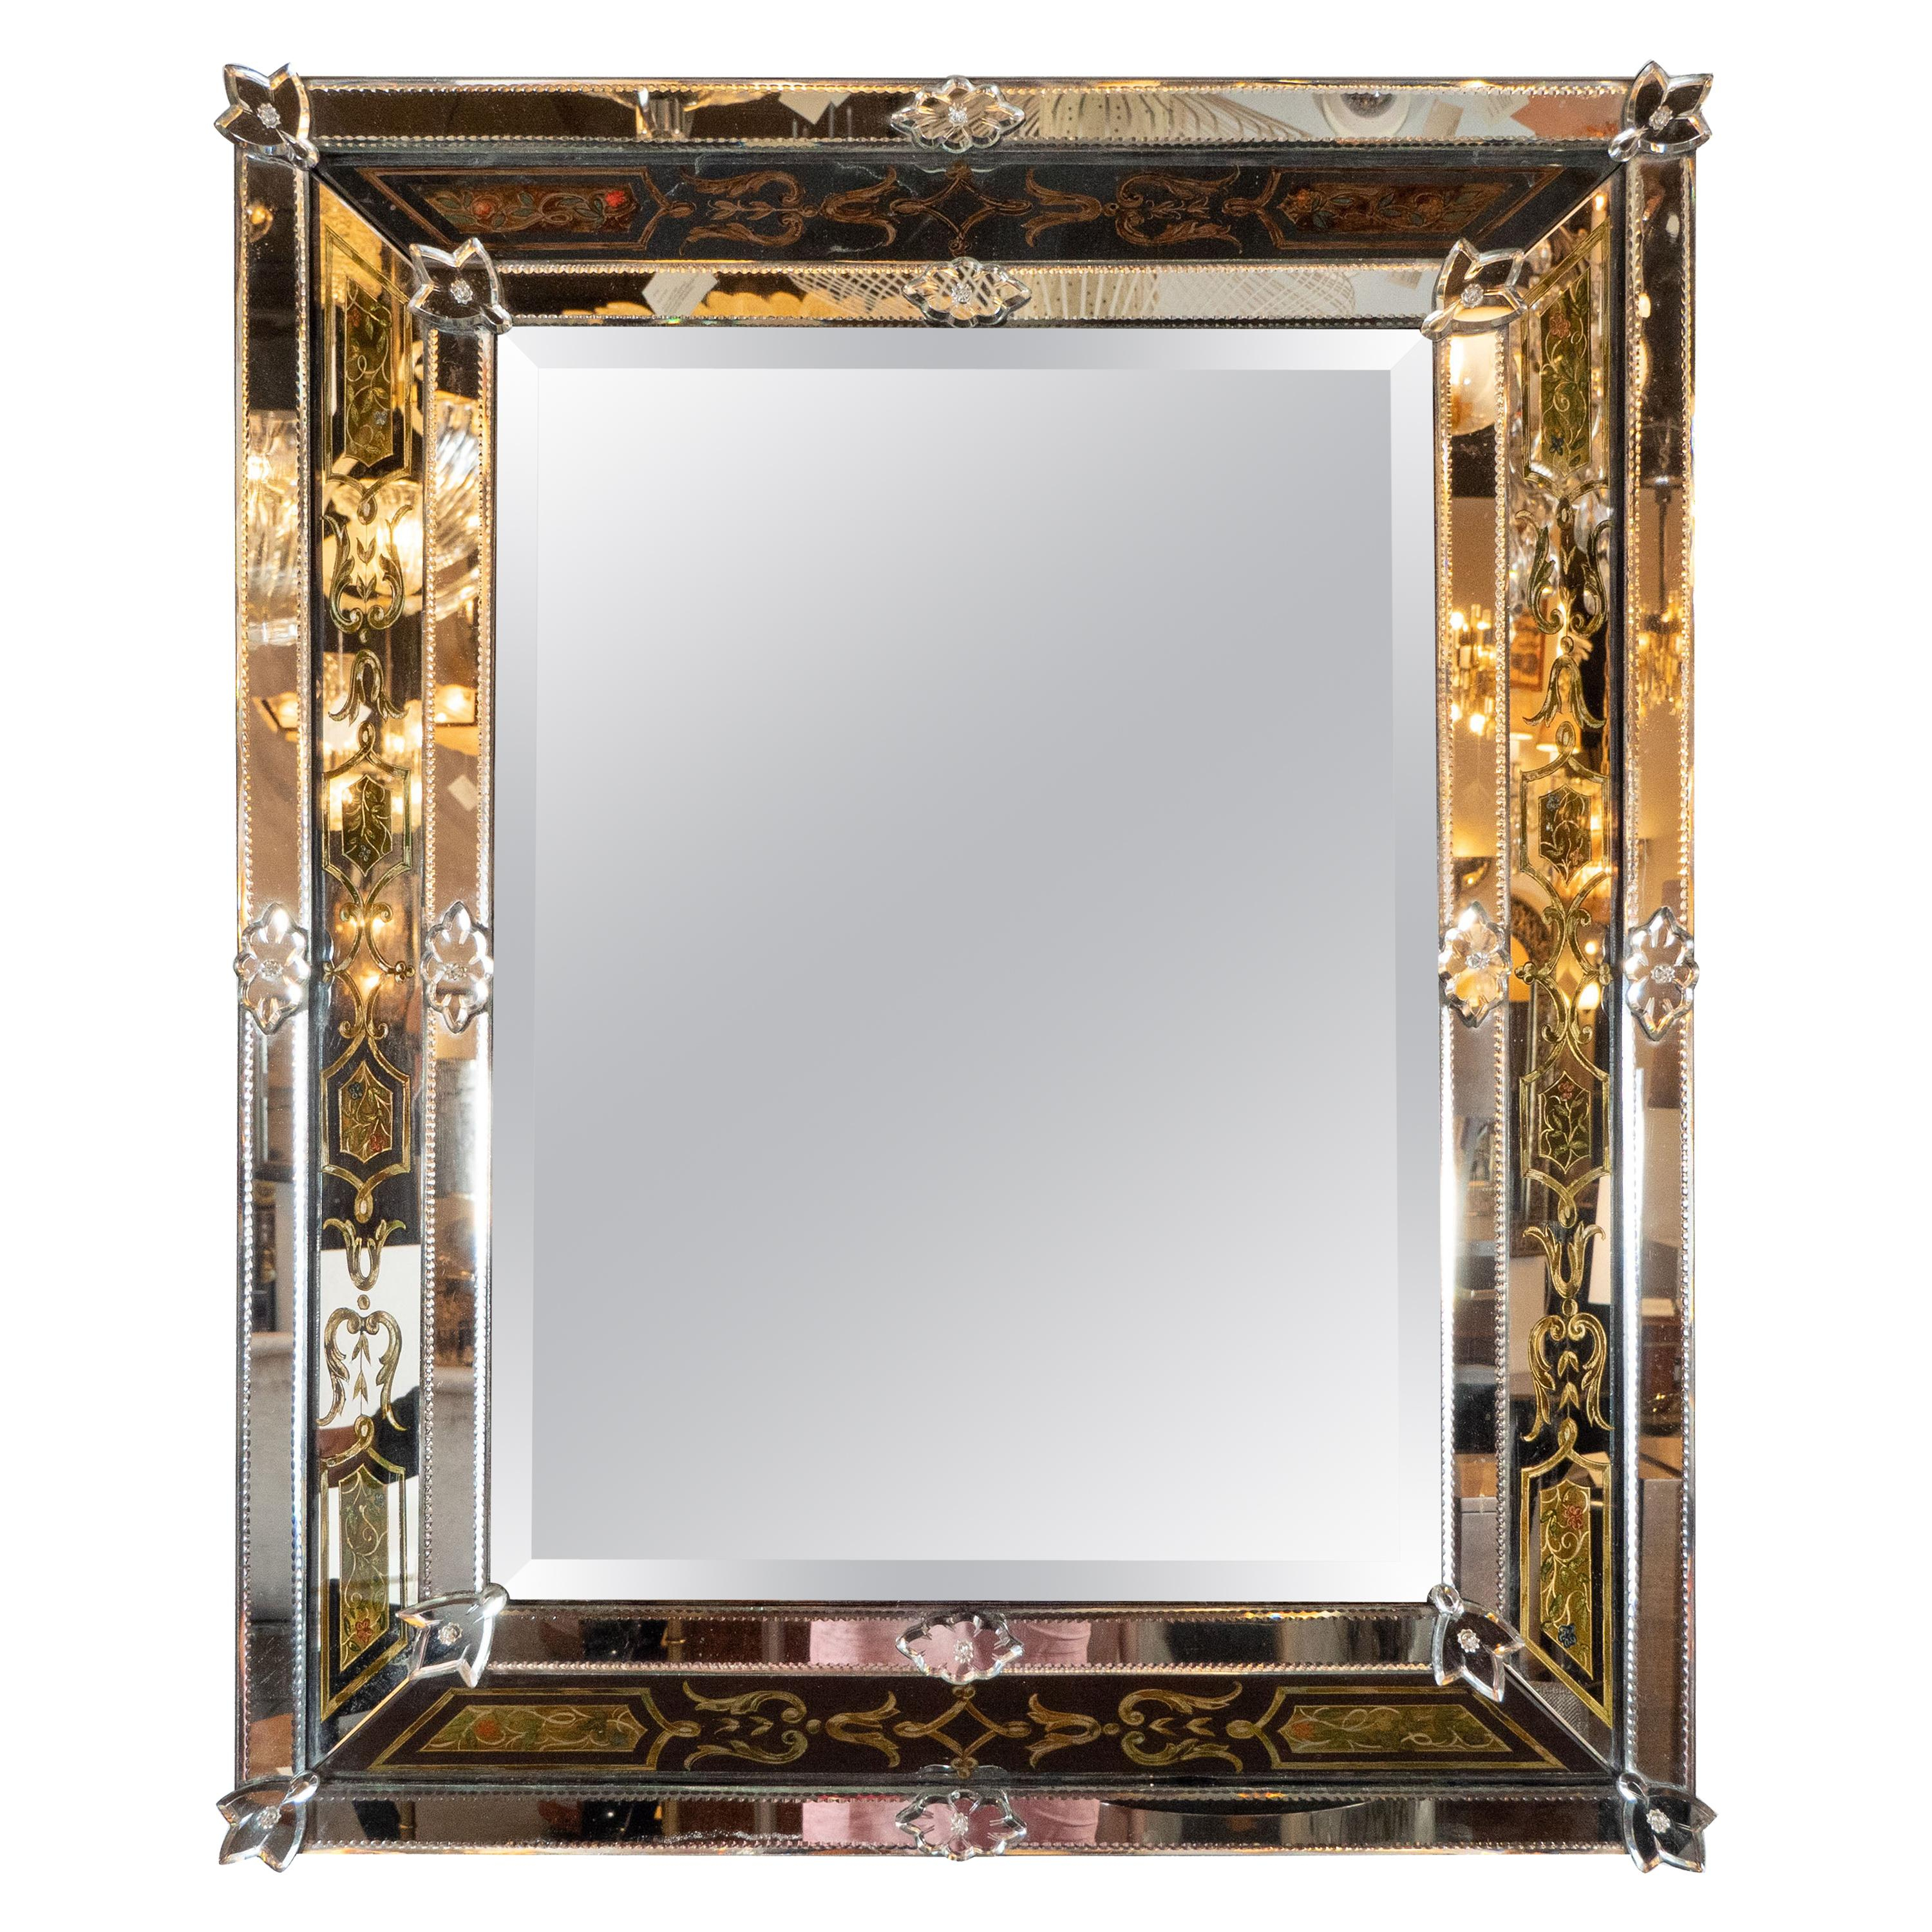 Beveled Mirror Panels – 124 For Sale On 1Stdibs Regarding Modern & Contemporary Beveled Overmantel Mirrors (View 16 of 20)